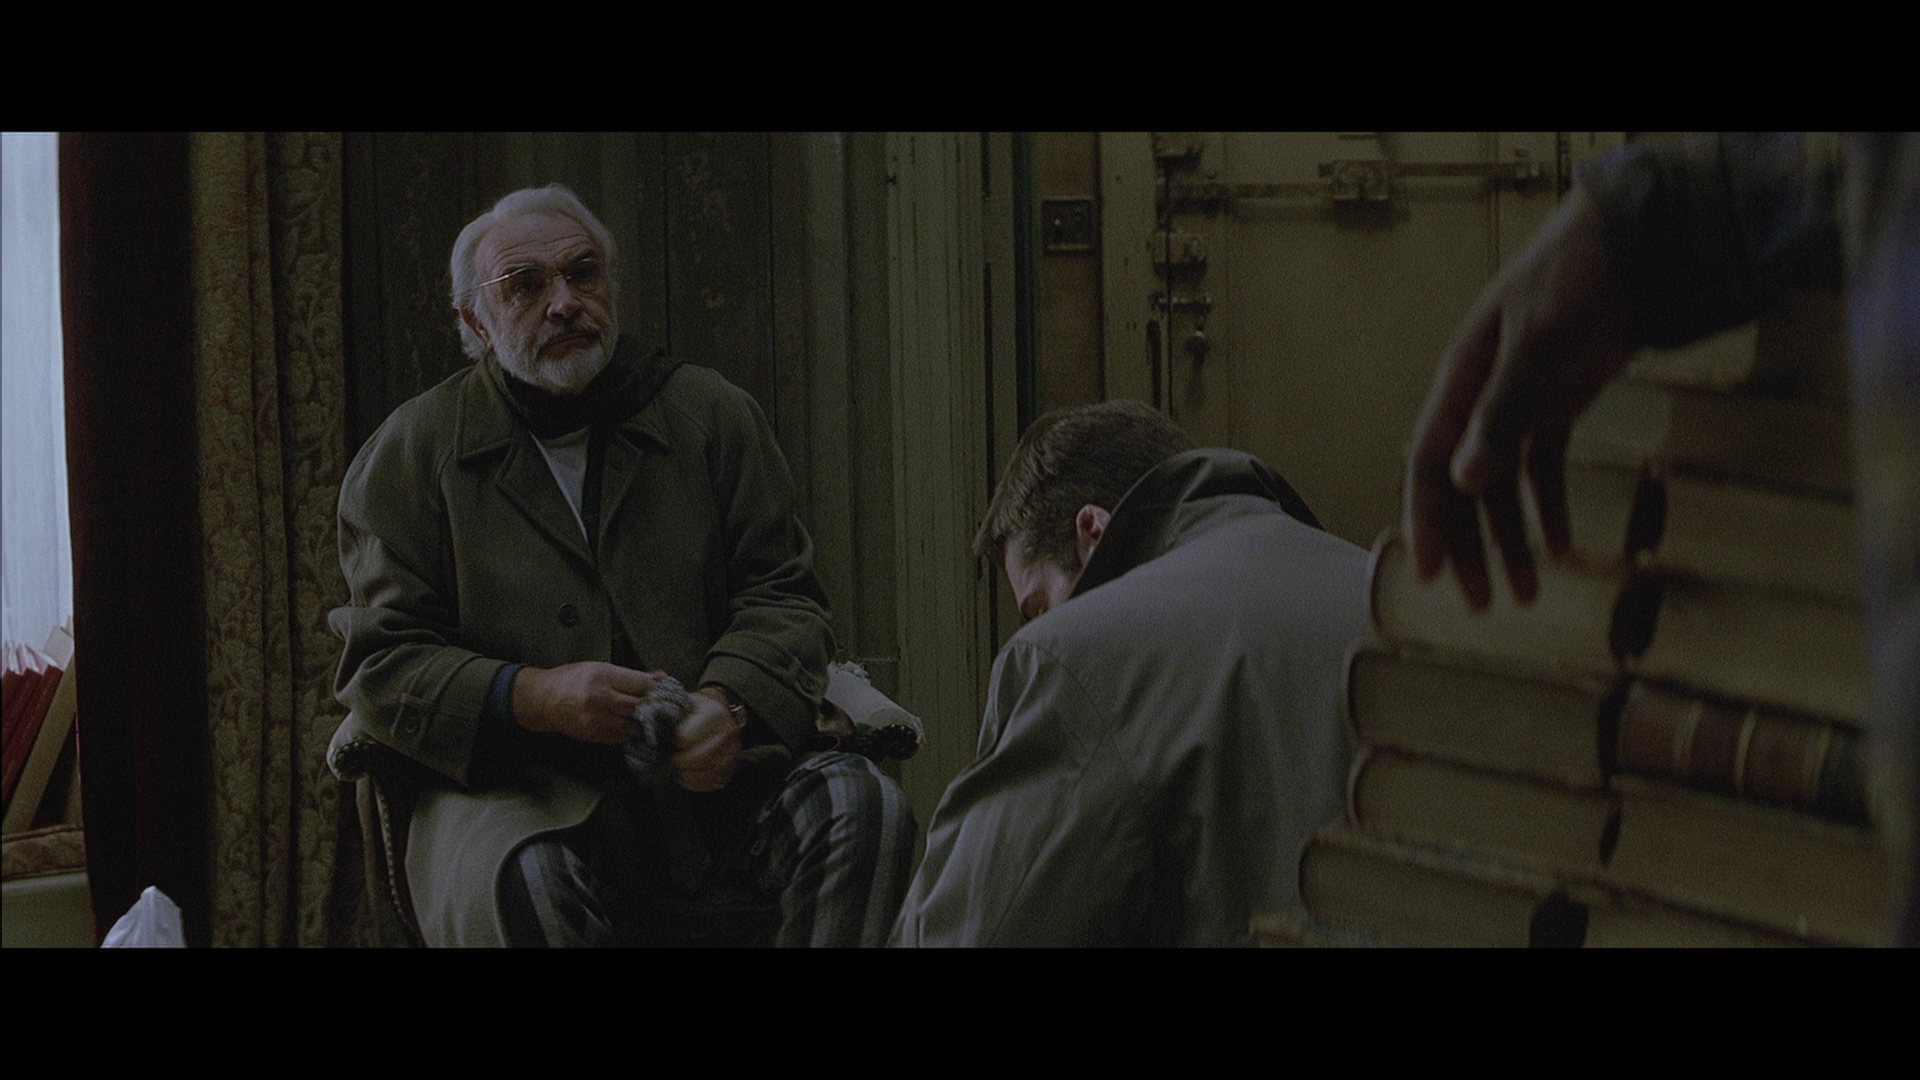 finding forrester movie clips - HD1920×1080